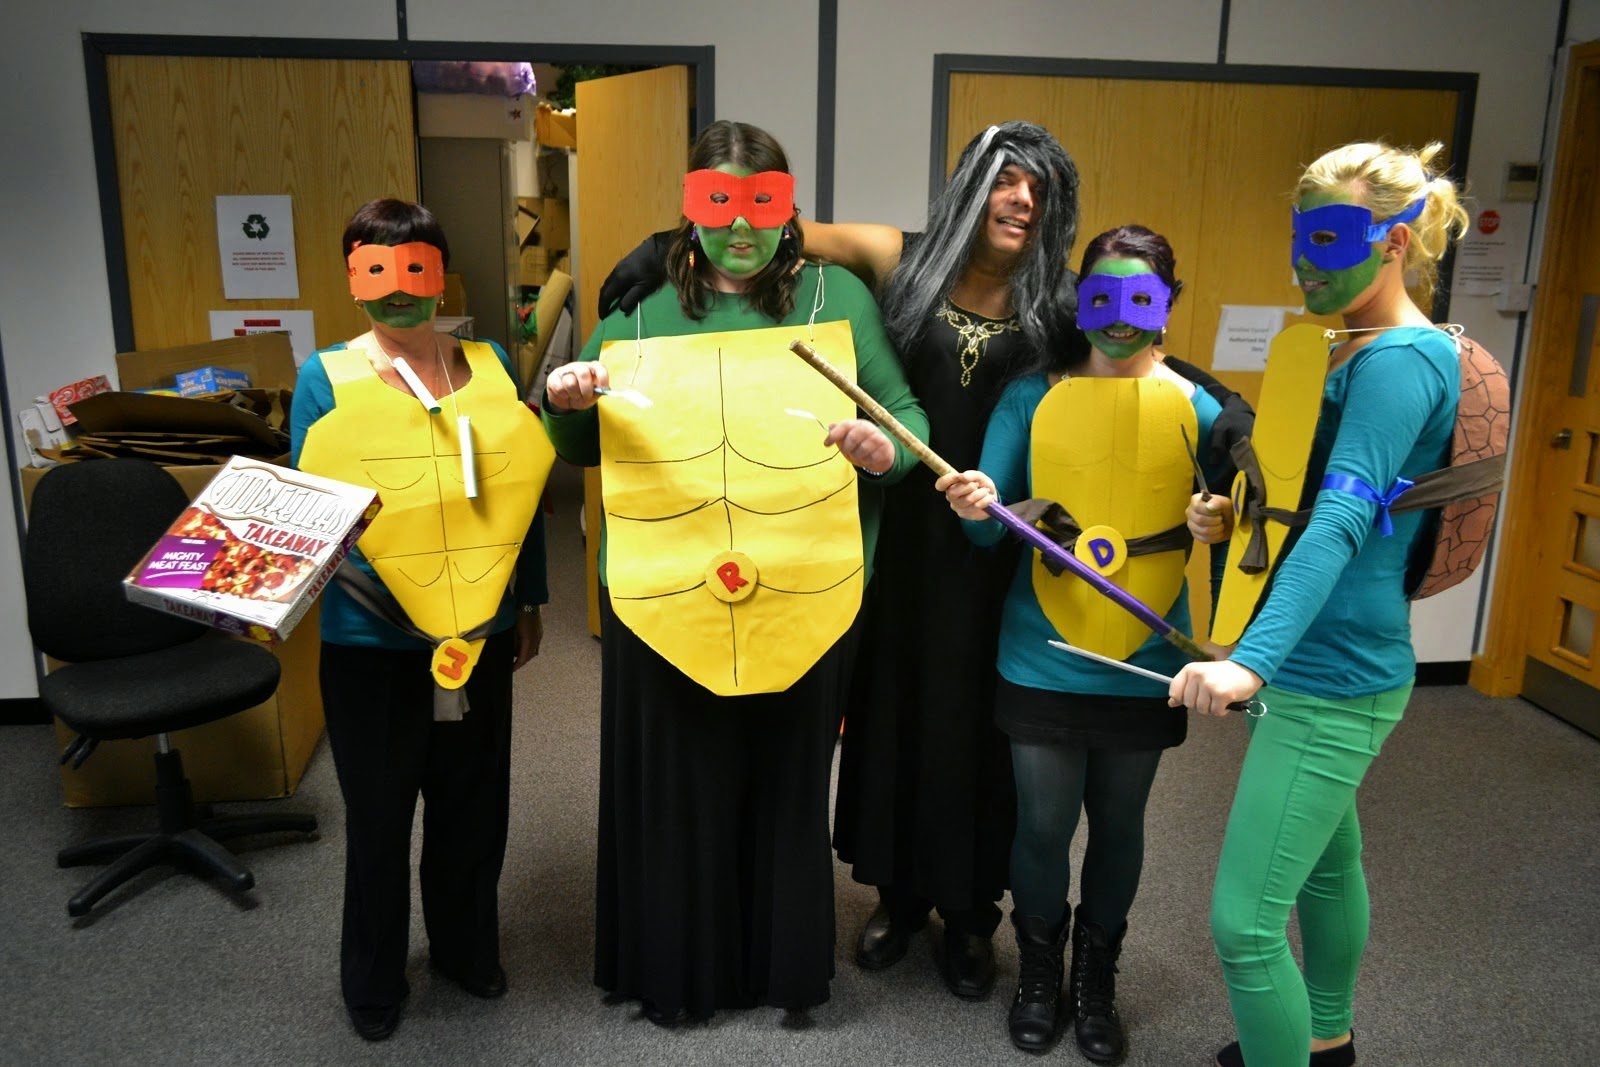 teenage mutant ninja turtles halloween costume at office dress up competition with brazilian colleague dressed as